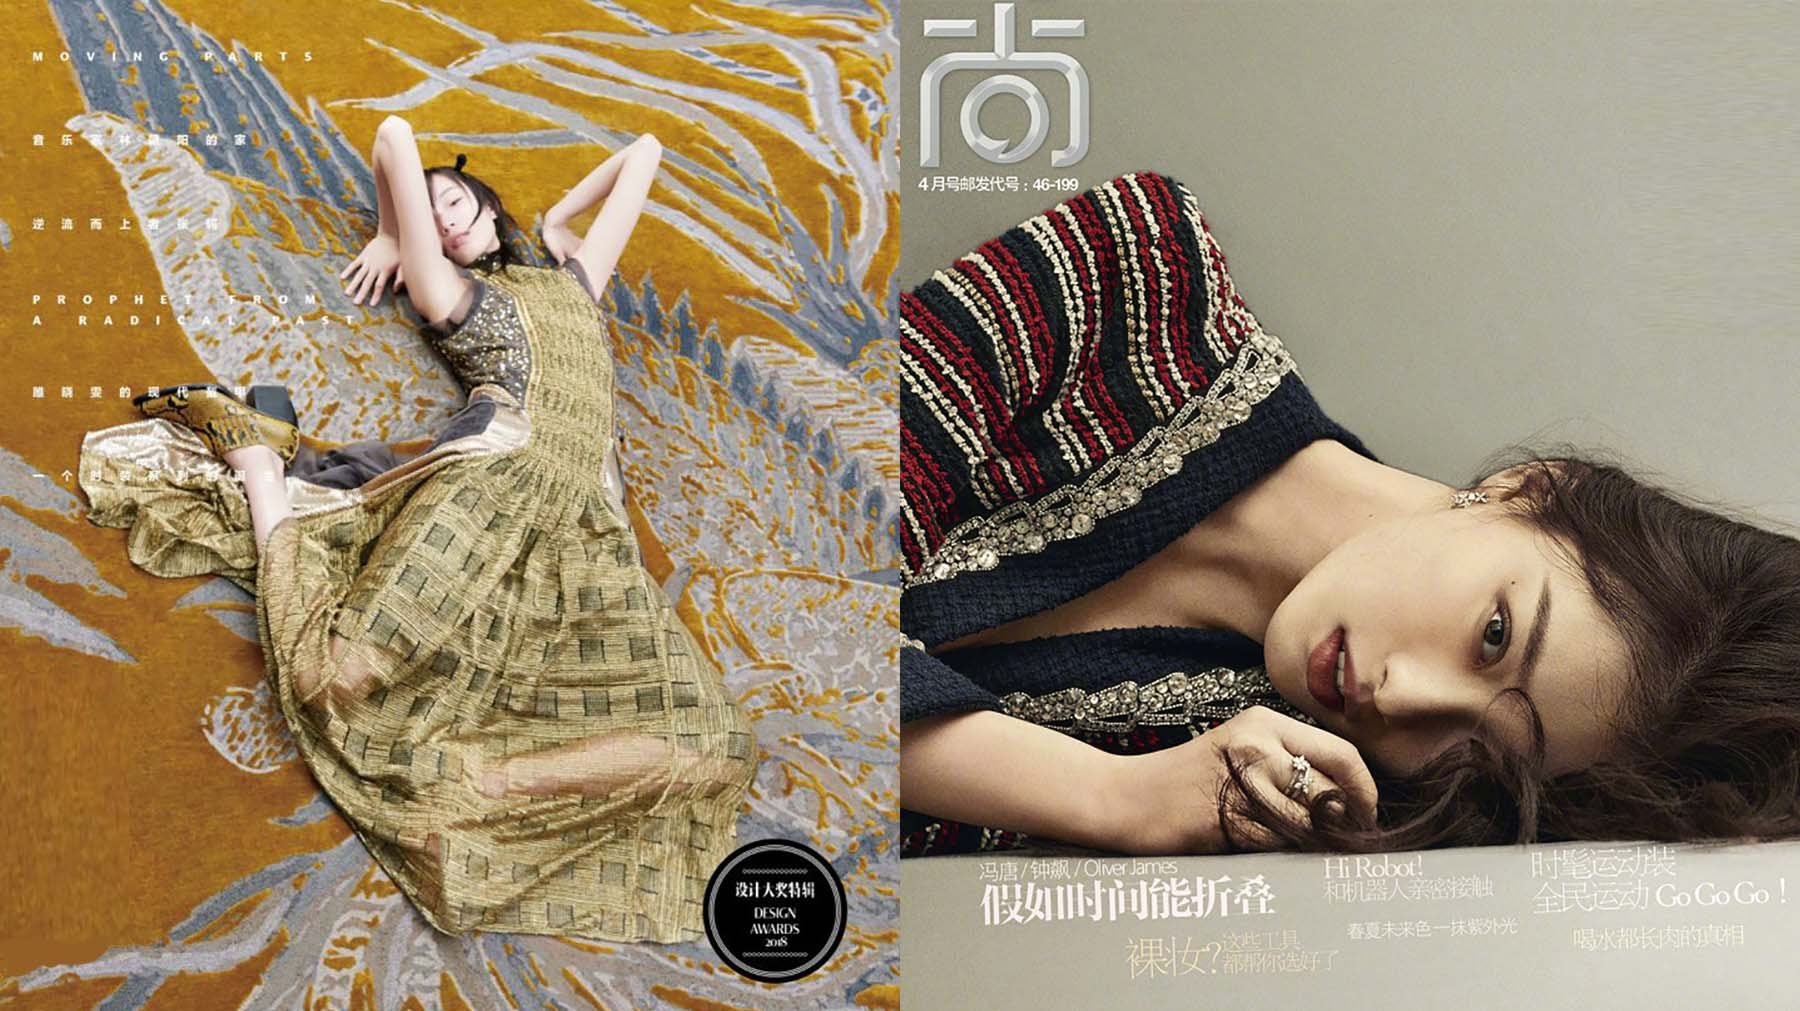 From left: Xiao Wen Ju for Wallpaper China March 2018; Ni Ni for Cosmopolitan China April 2018 | Source: Courtesy